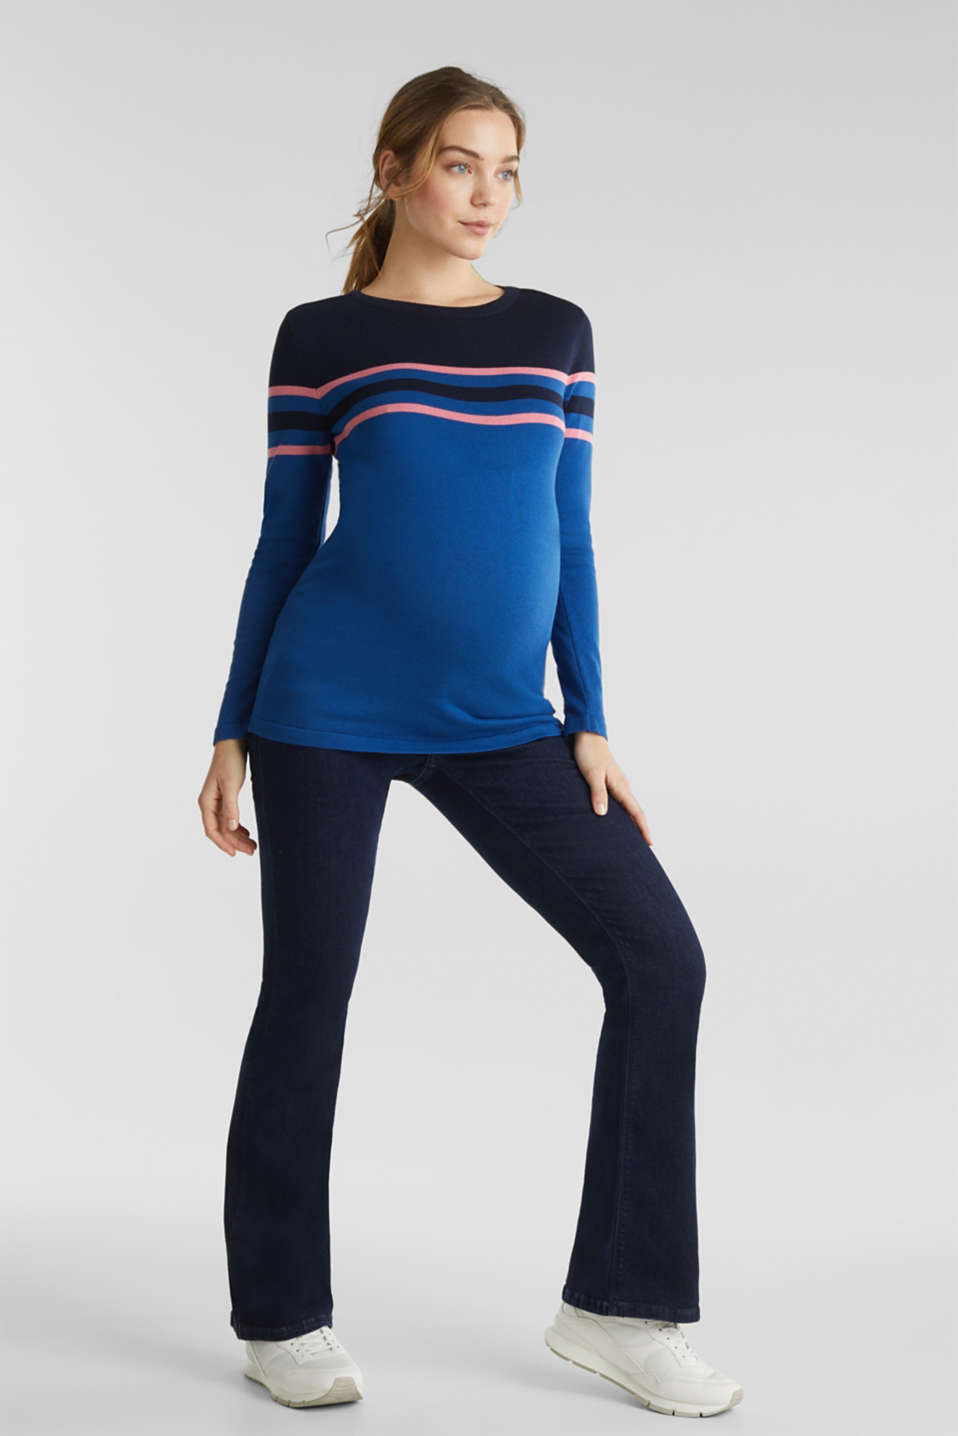 Colour block jumper with stripes, LCBRIGHT BLUE, detail image number 1